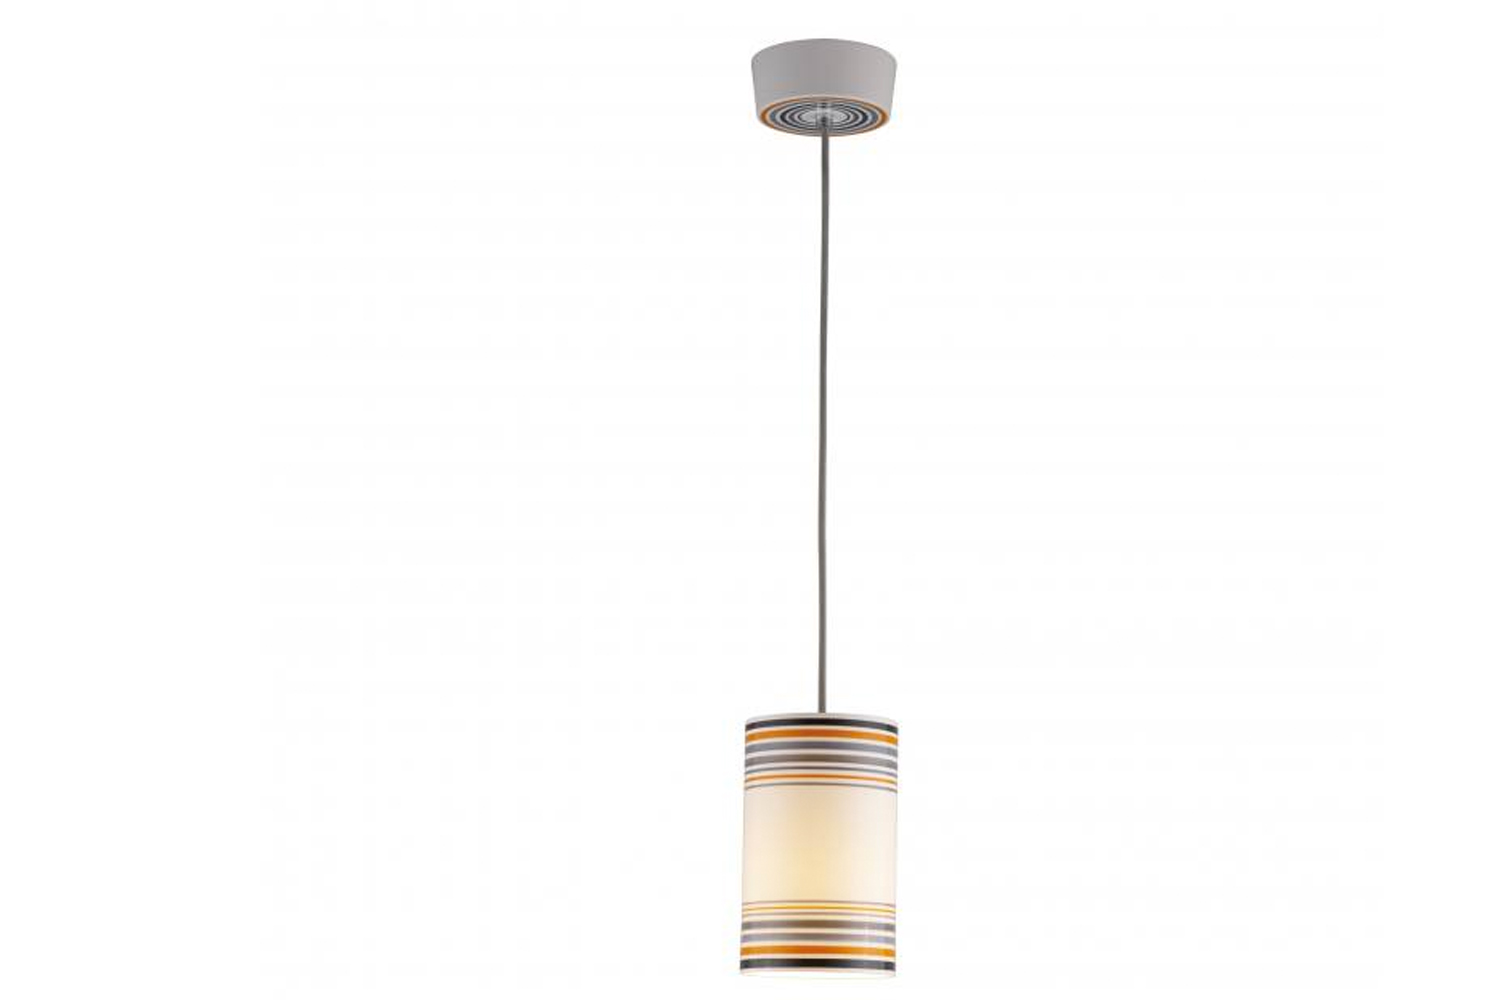 The pendant's white shades are painted at the top and bottom only, in order to introduce small pops of color without impacting the quality of light emitted.